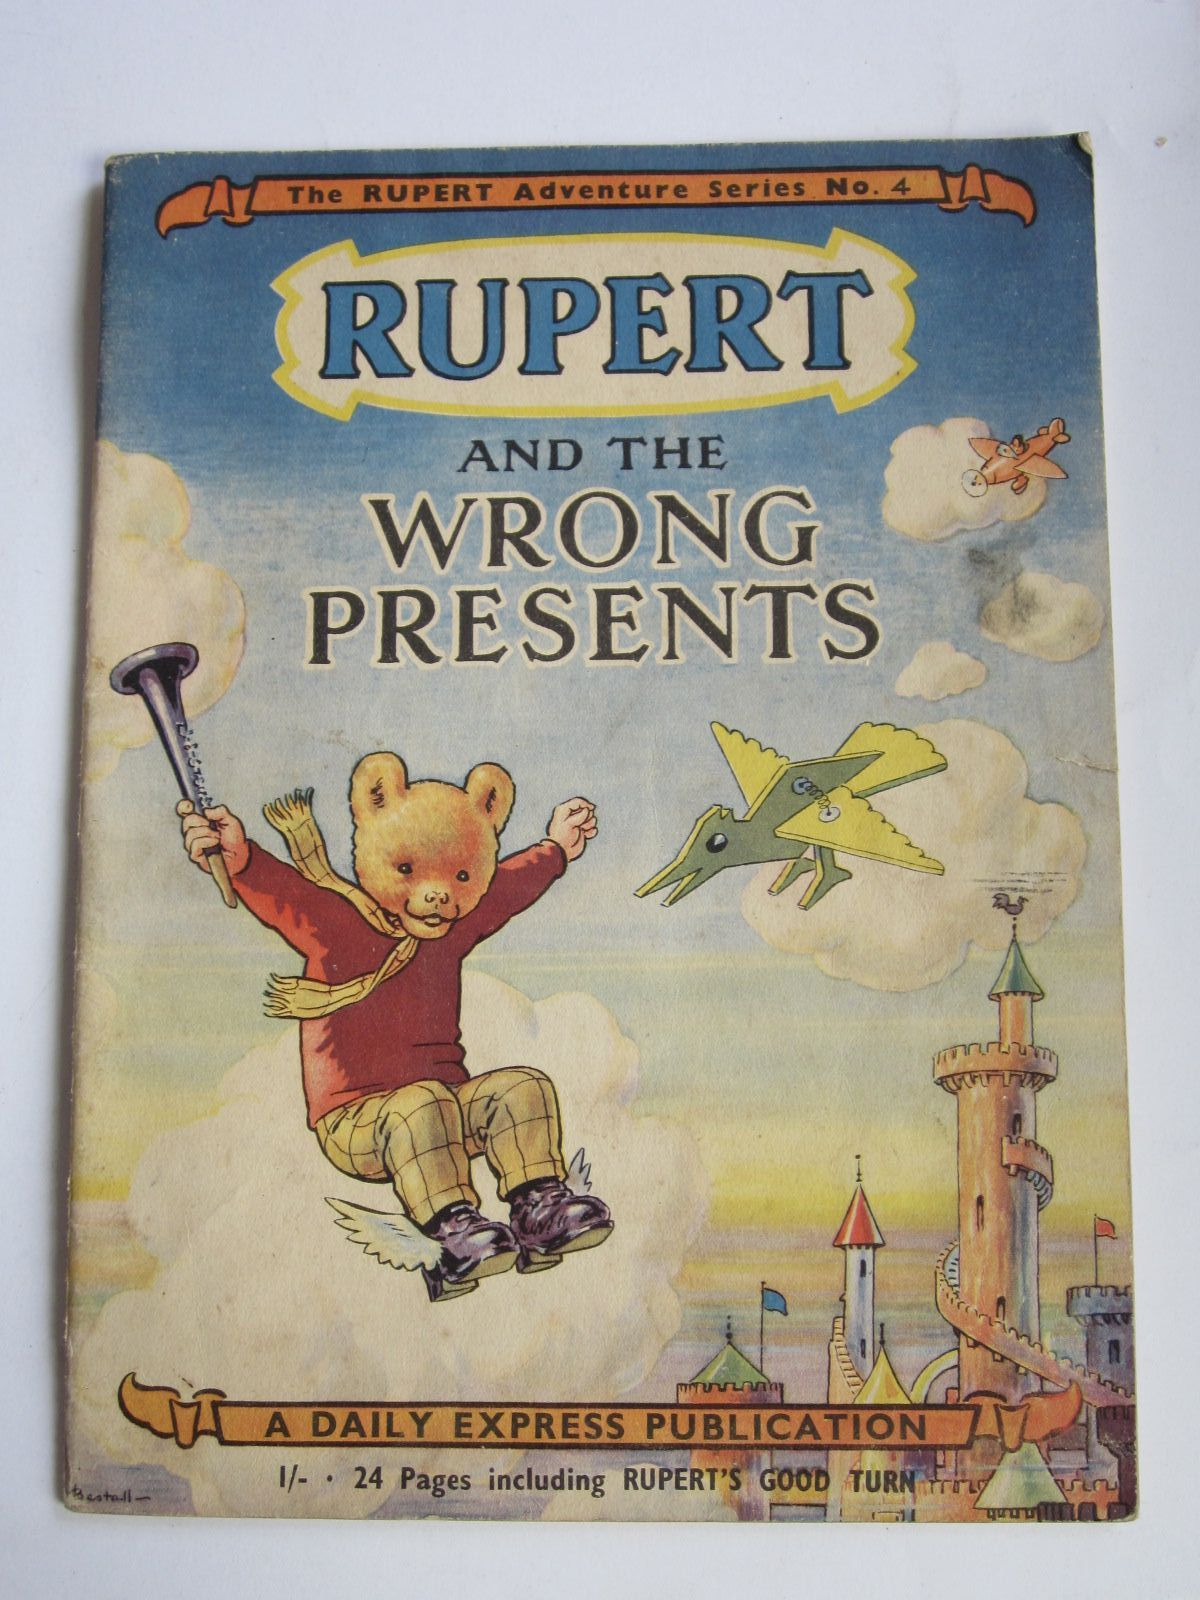 Photo of RUPERT ADVENTURE SERIES No. 4 - RUPERT AND THE WRONG PRESENTS written by Bestall, Alfred illustrated by Bestall, Alfred published by Daily Express (STOCK CODE: 1309073)  for sale by Stella & Rose's Books